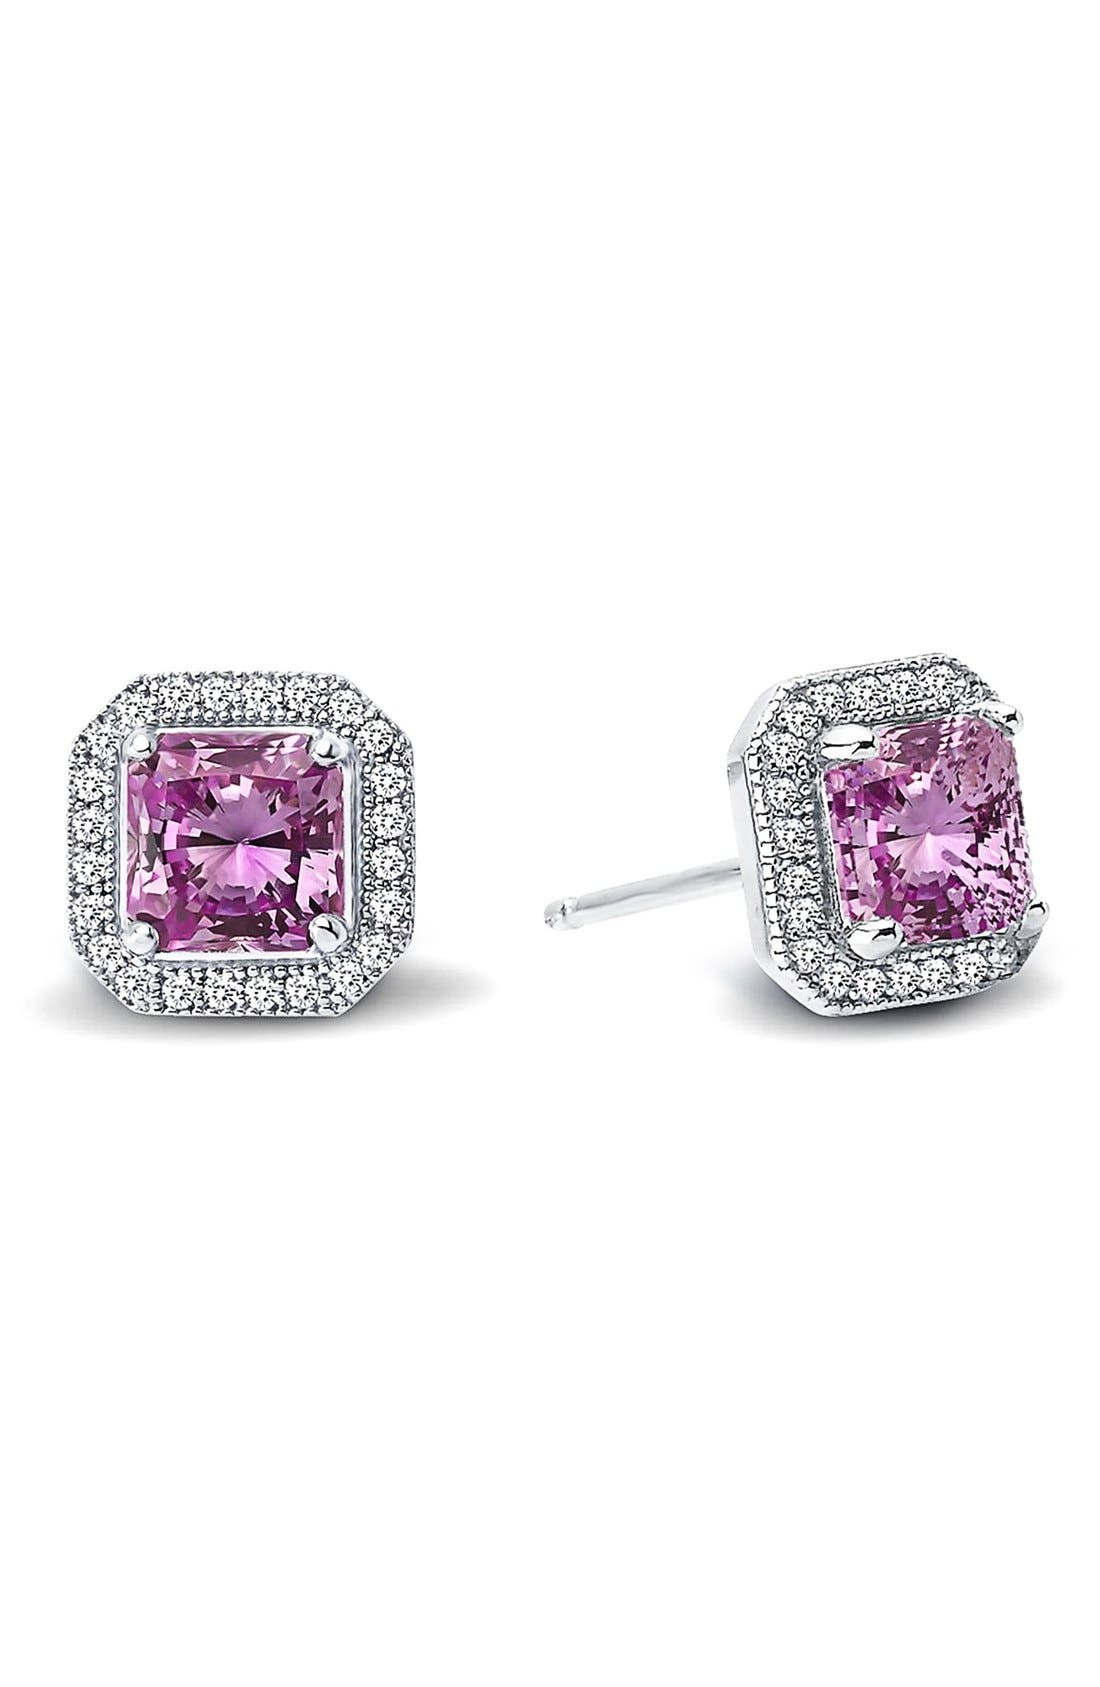 'Lassaire' Stud Earrings,                         Main,                         color, 040